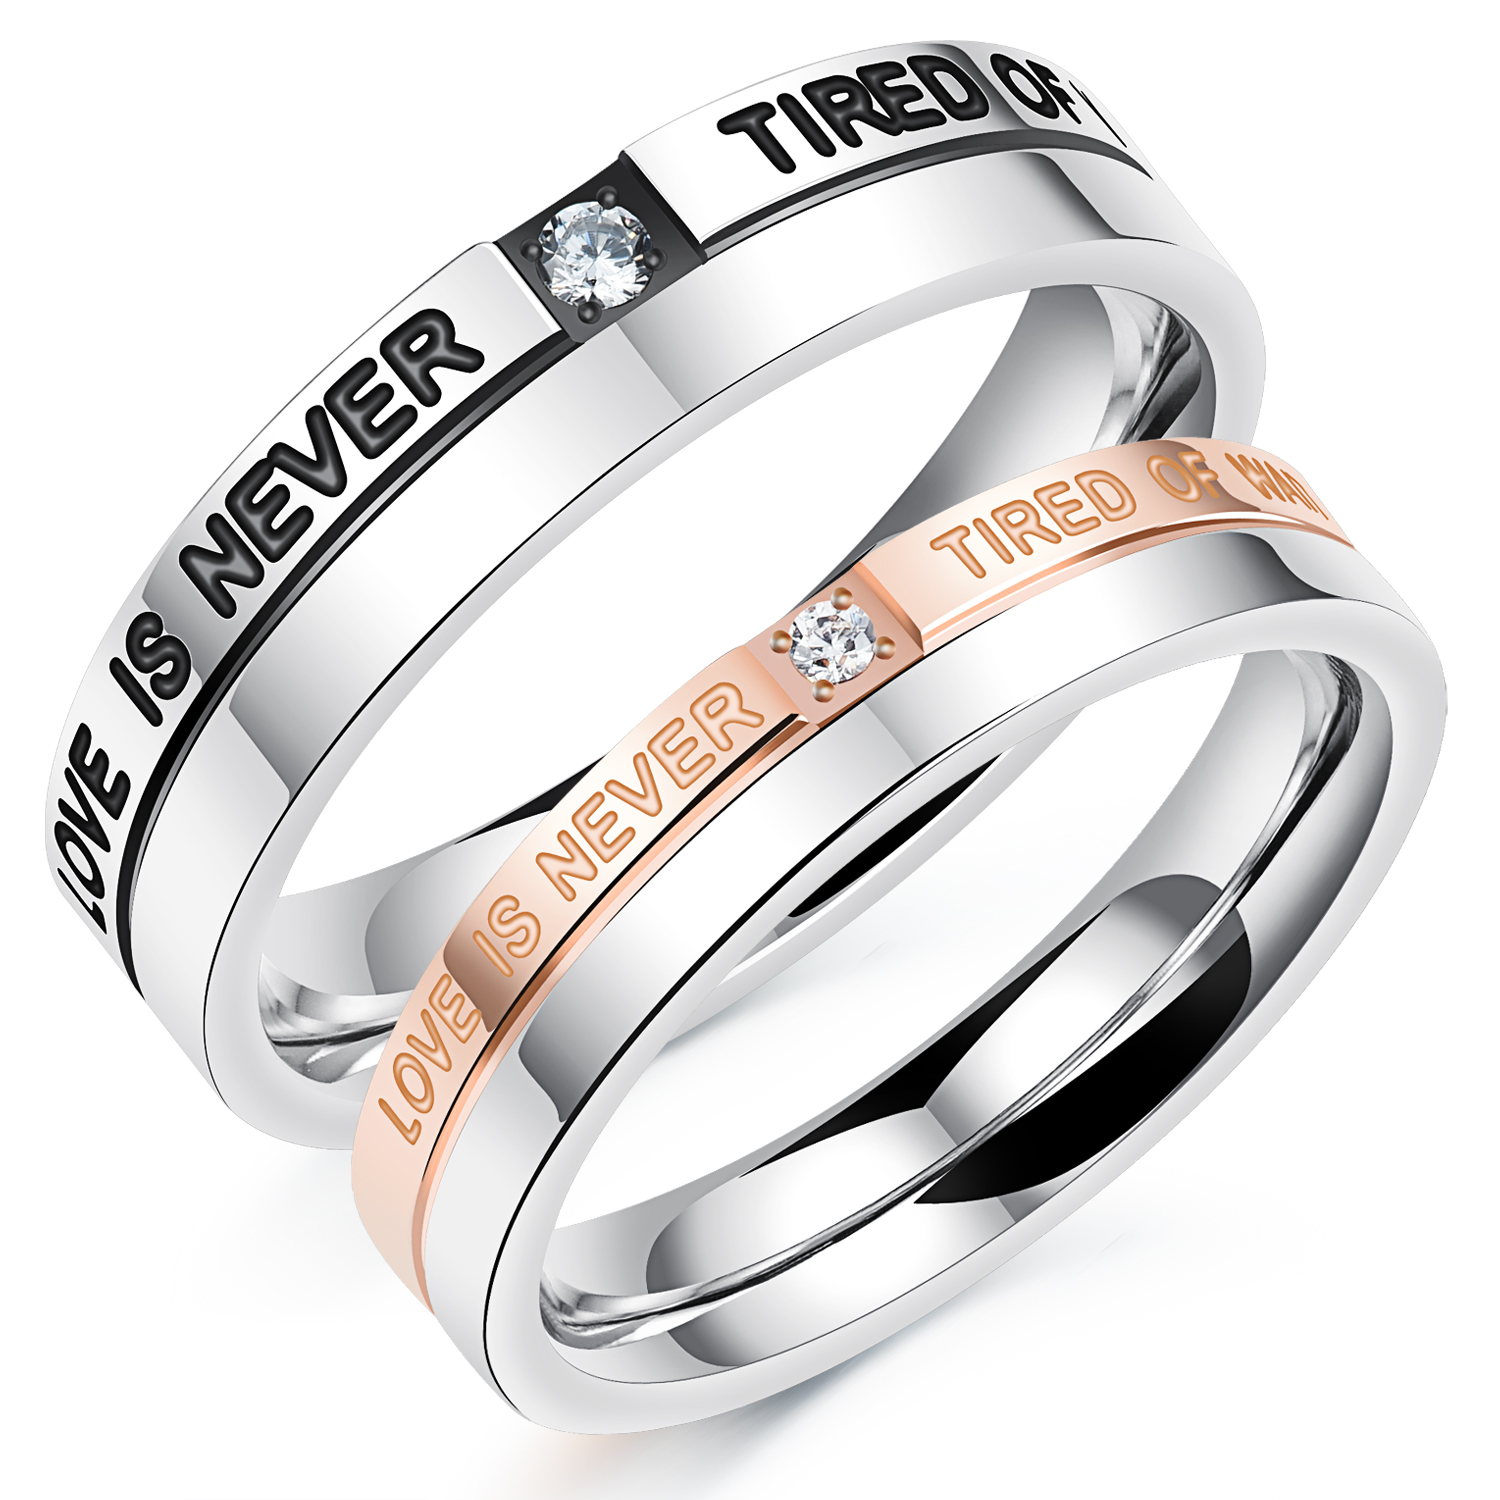 Romantic Lovers Stainless Steel Couples Wedding Rings Black & Rose Gold  Color With Cubic Zirconia Jewelry